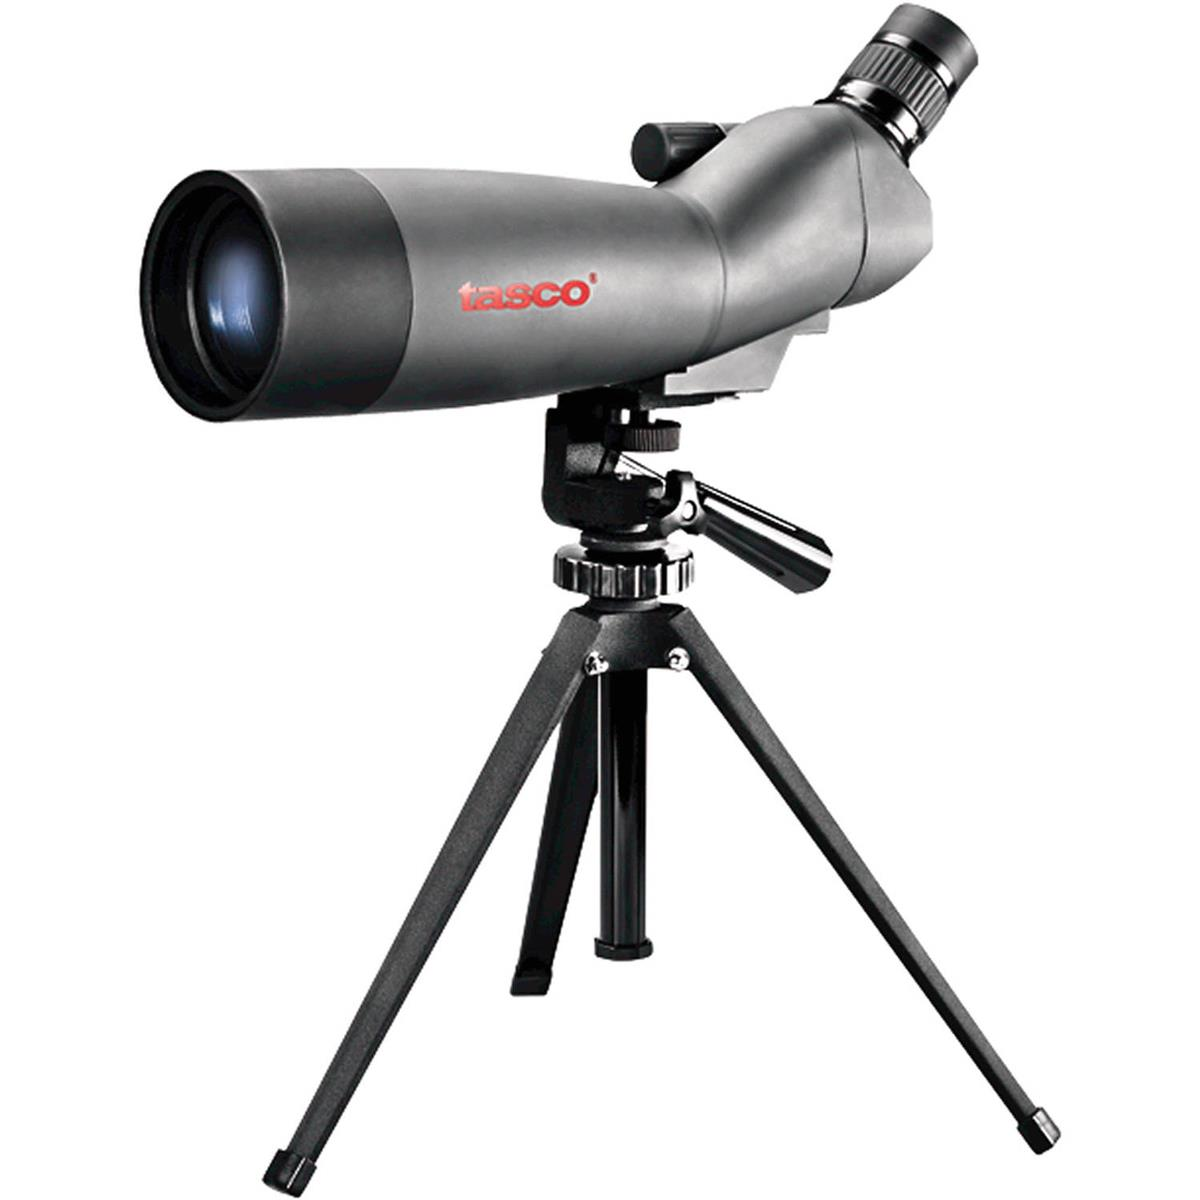 Tasco 20-60x60mm Spotting Scope with 45 Angled Viewfinder